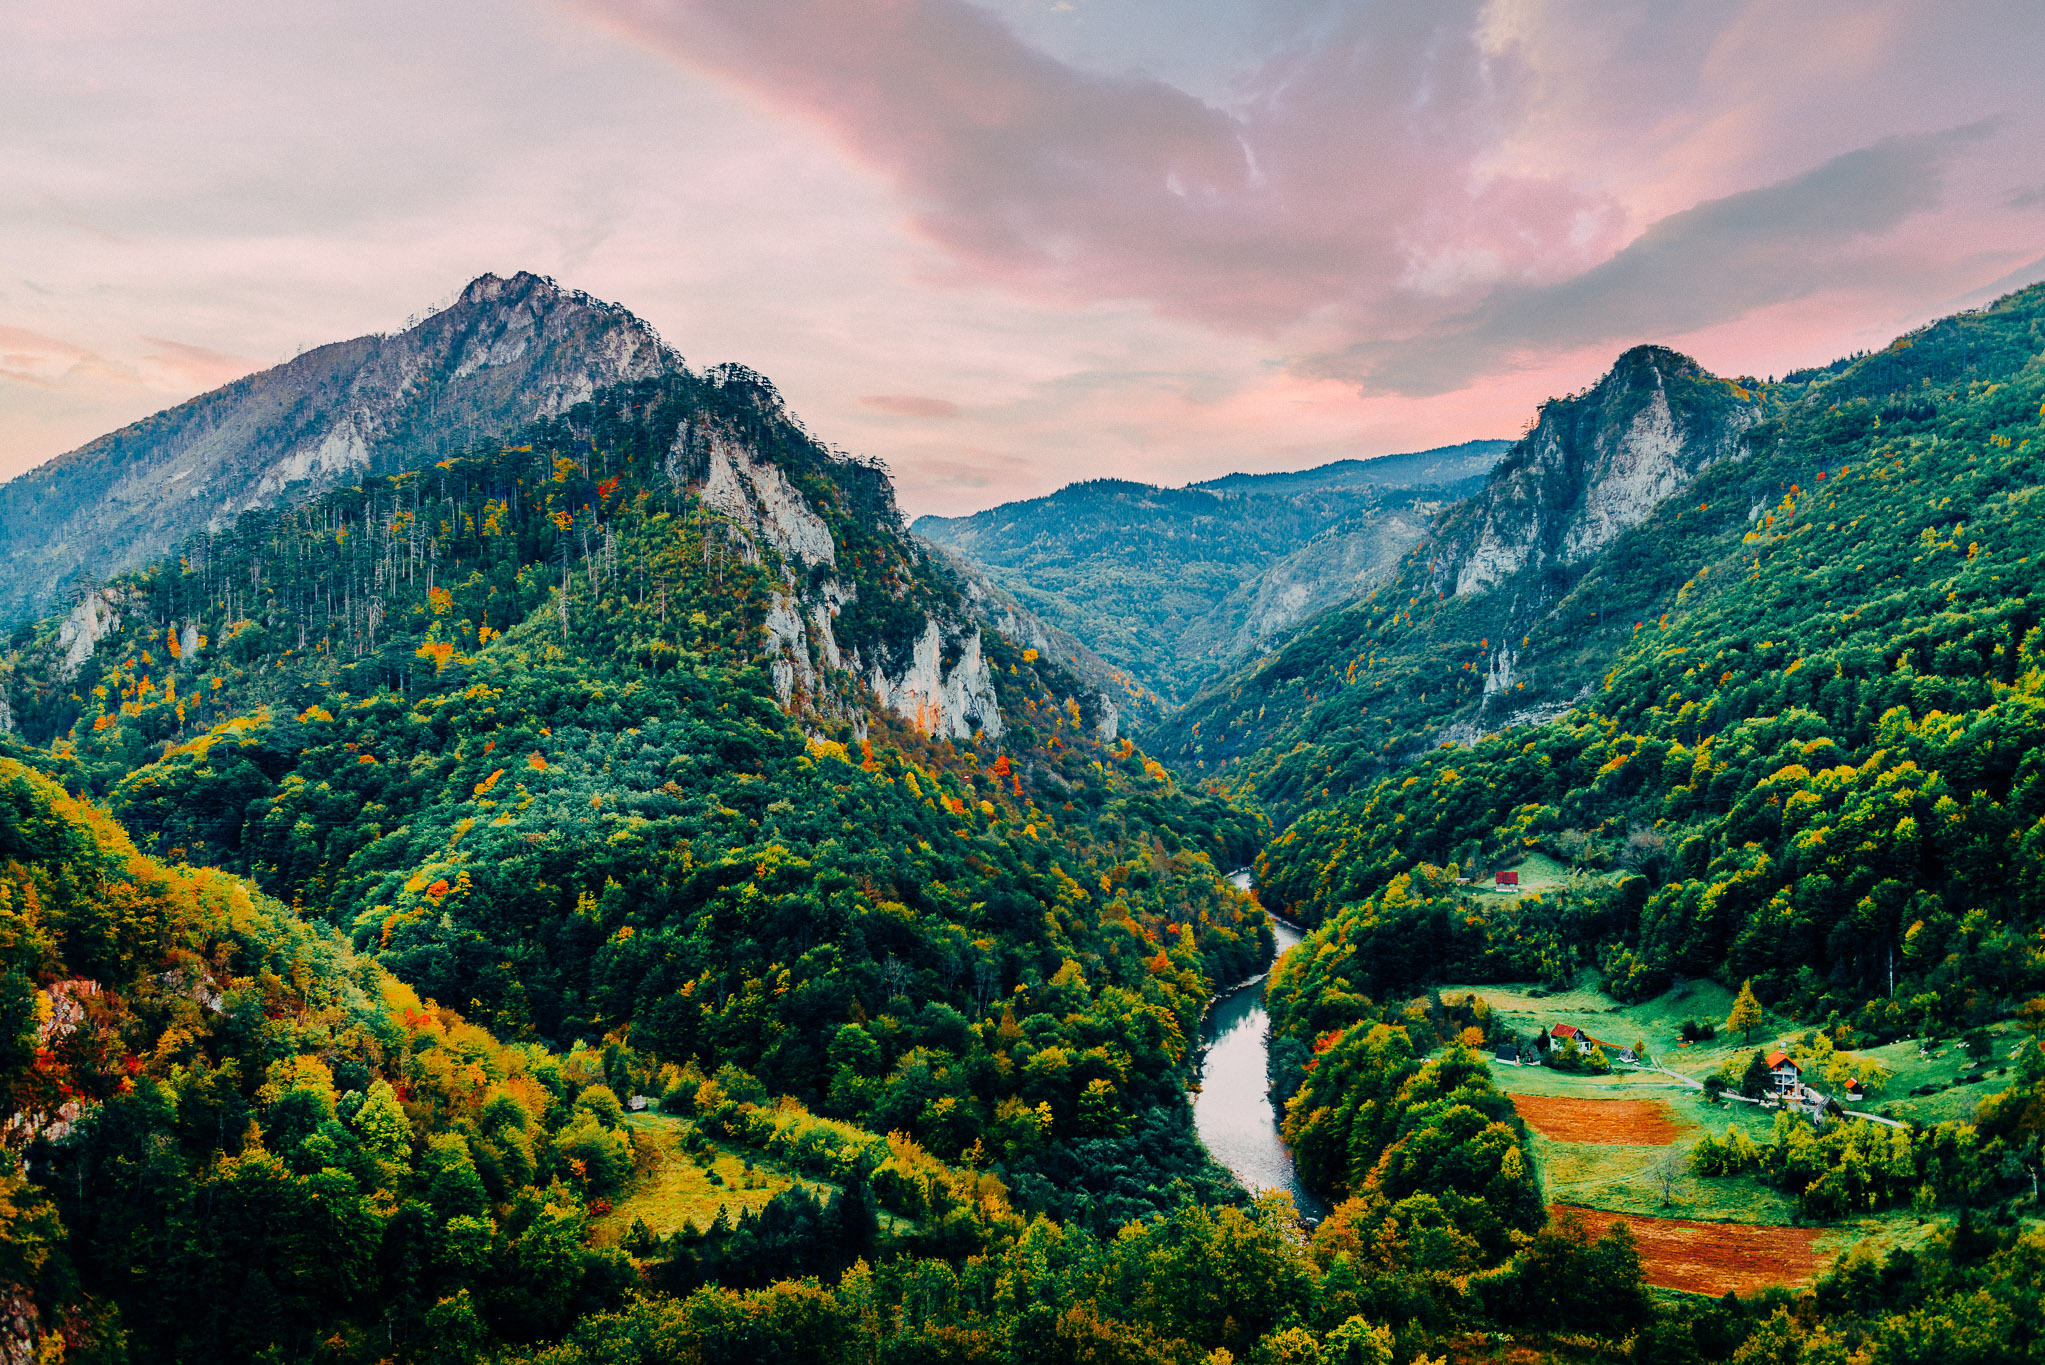 River Tara Canyon, the deepest canyon in Europe and the 2nd deepest in the world.